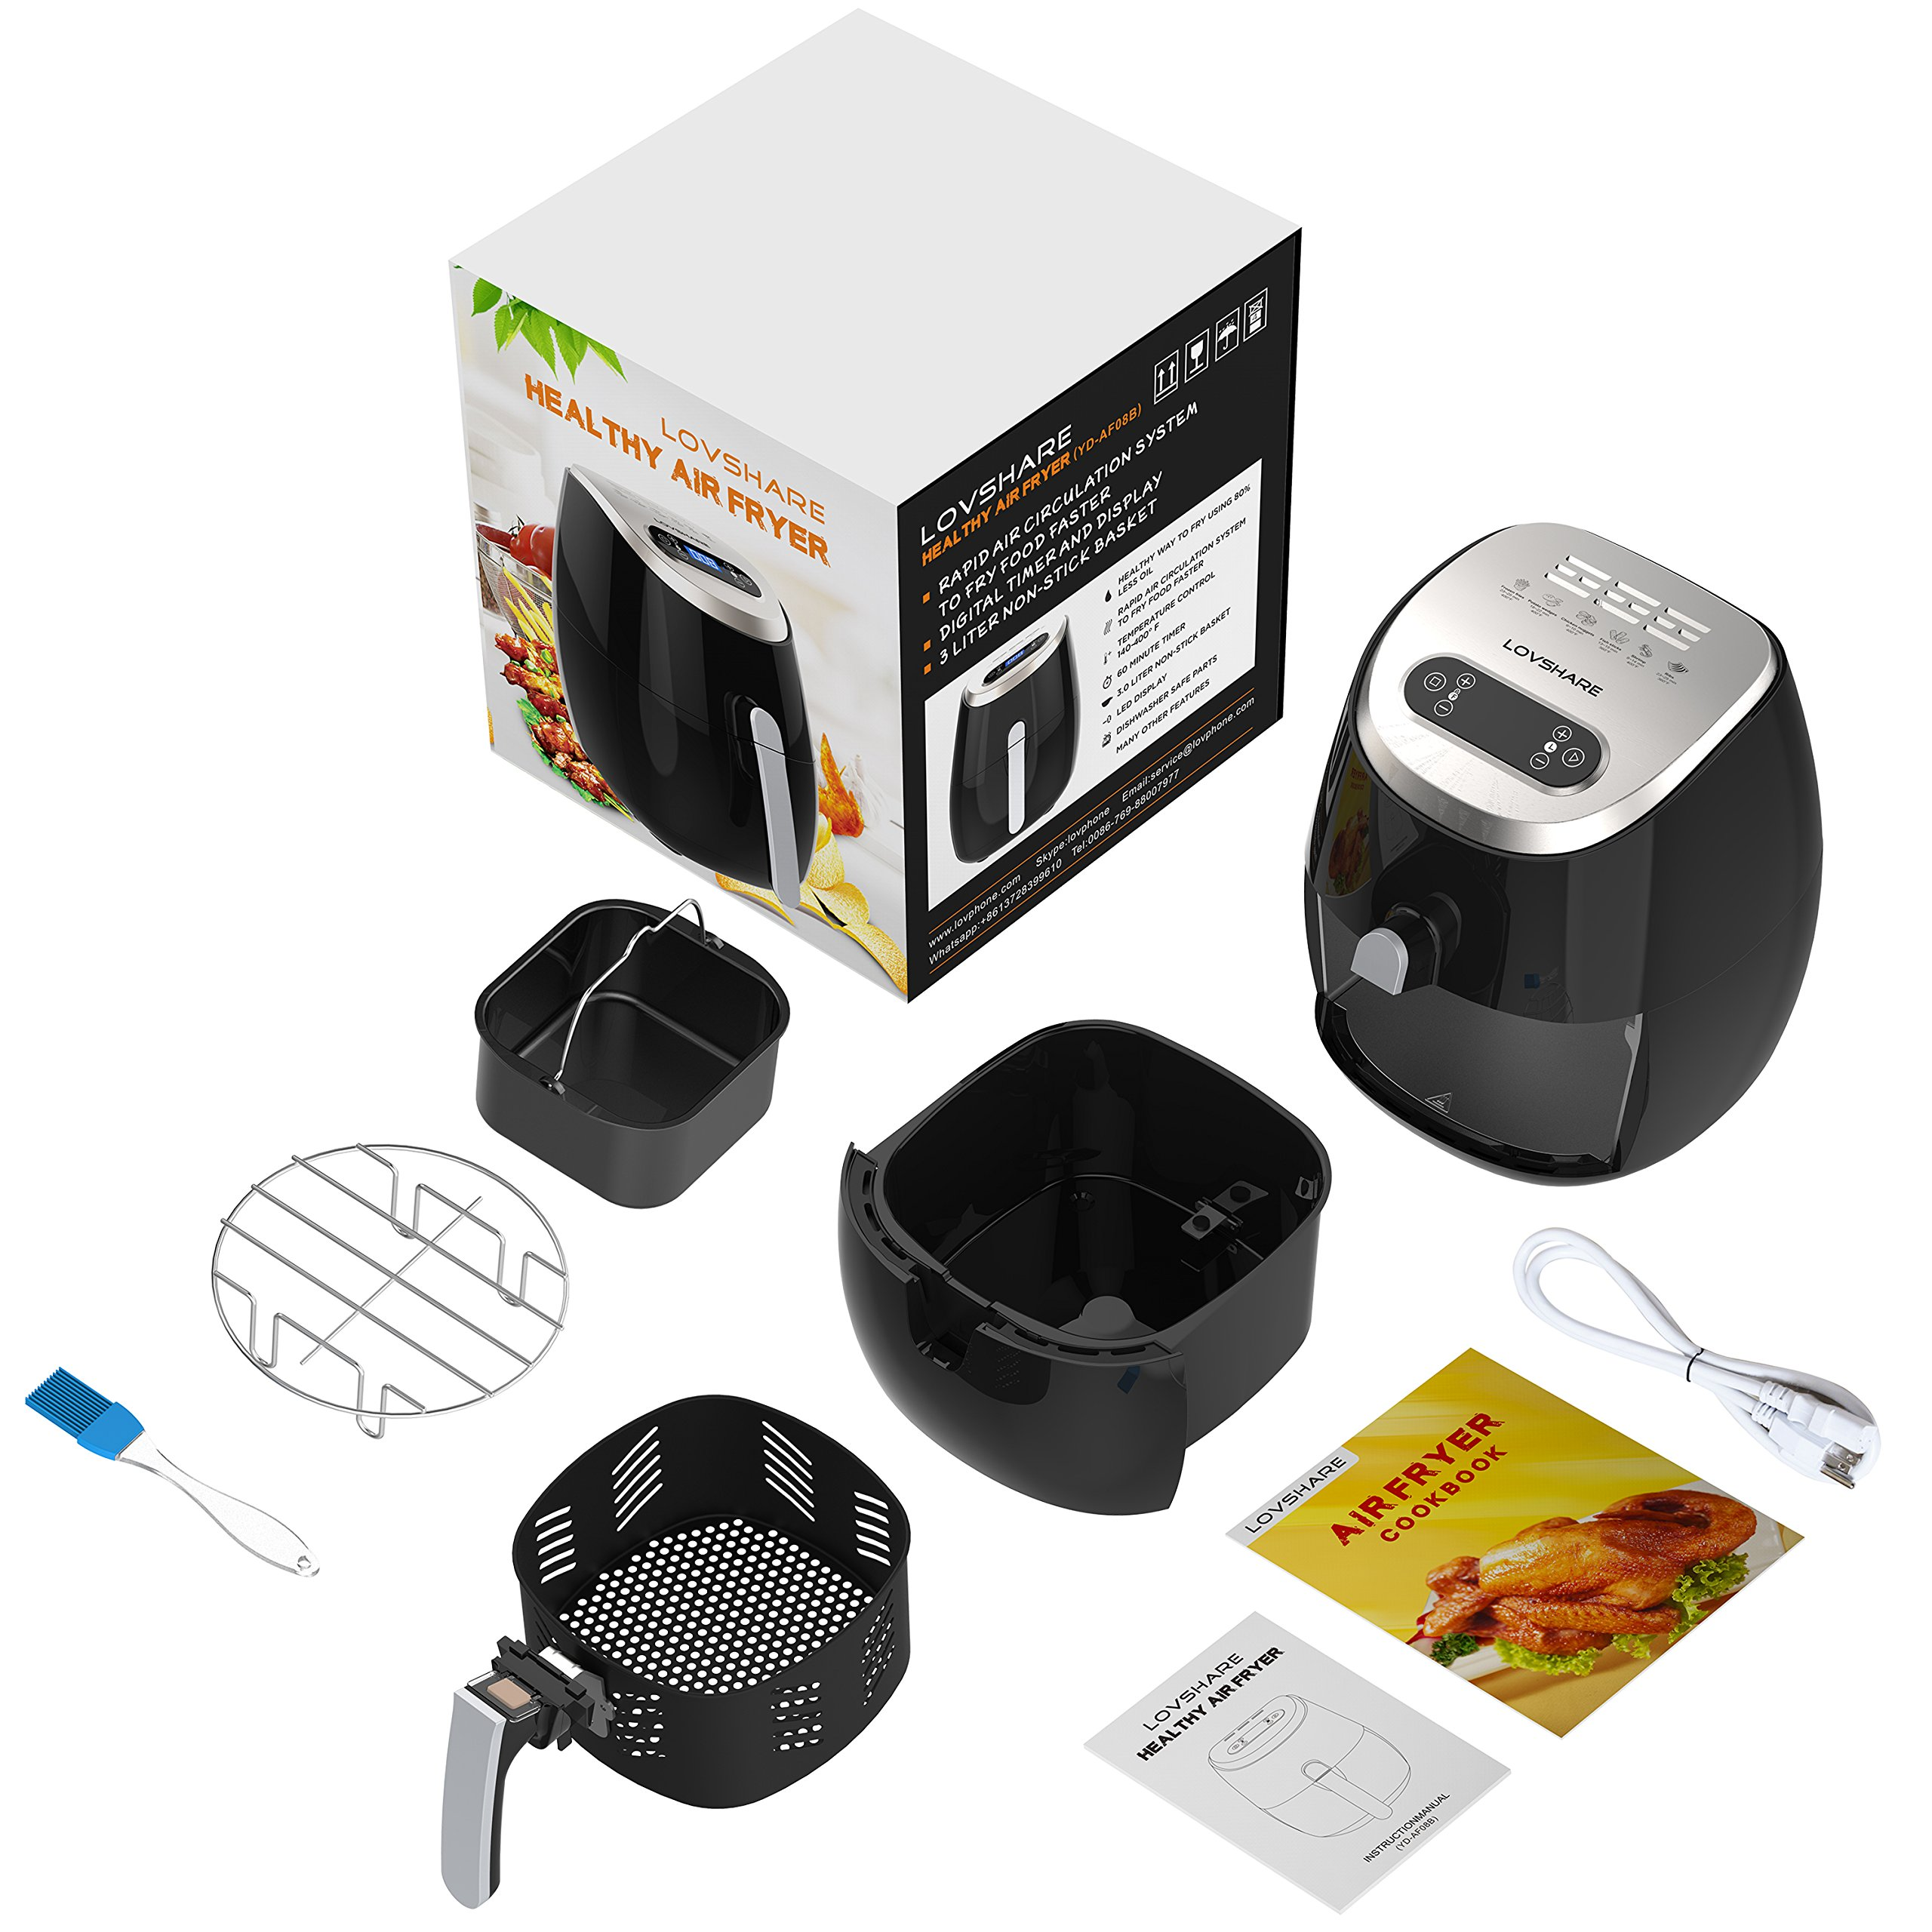 Air FryerLOVSHARE Touch Screen Control Oil Free Electric Air Fryer with Rapid Air Circulation Technology, Digital Display Smart Programs with Automatic and Manual Timer & Temperature Controls,3L by LOVSHARE (Image #8)